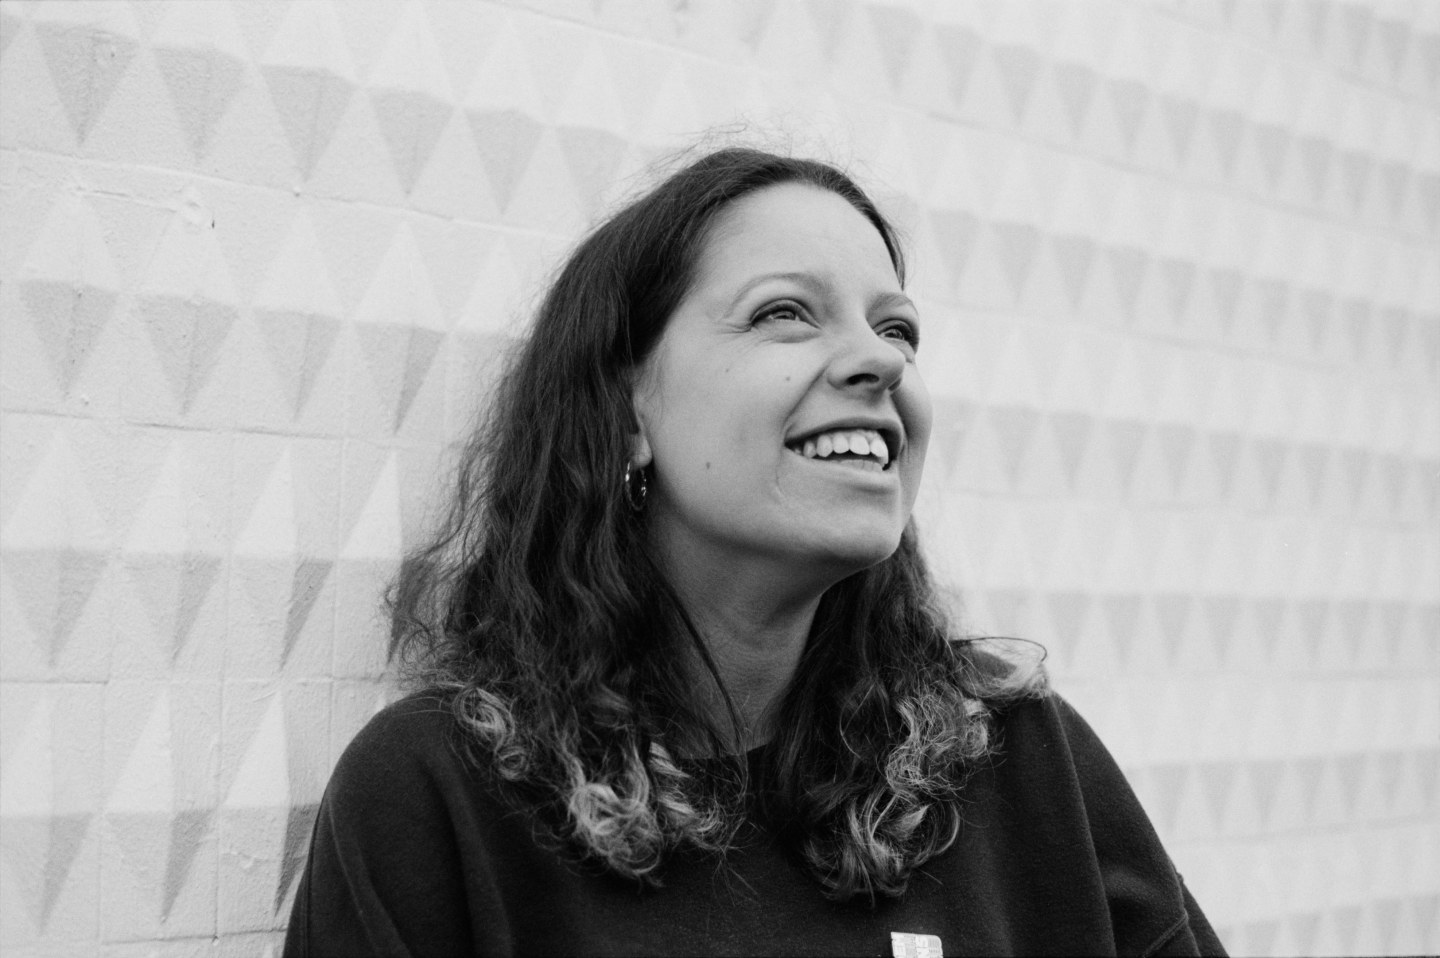 Tirzah's wavy soul (and soul music)